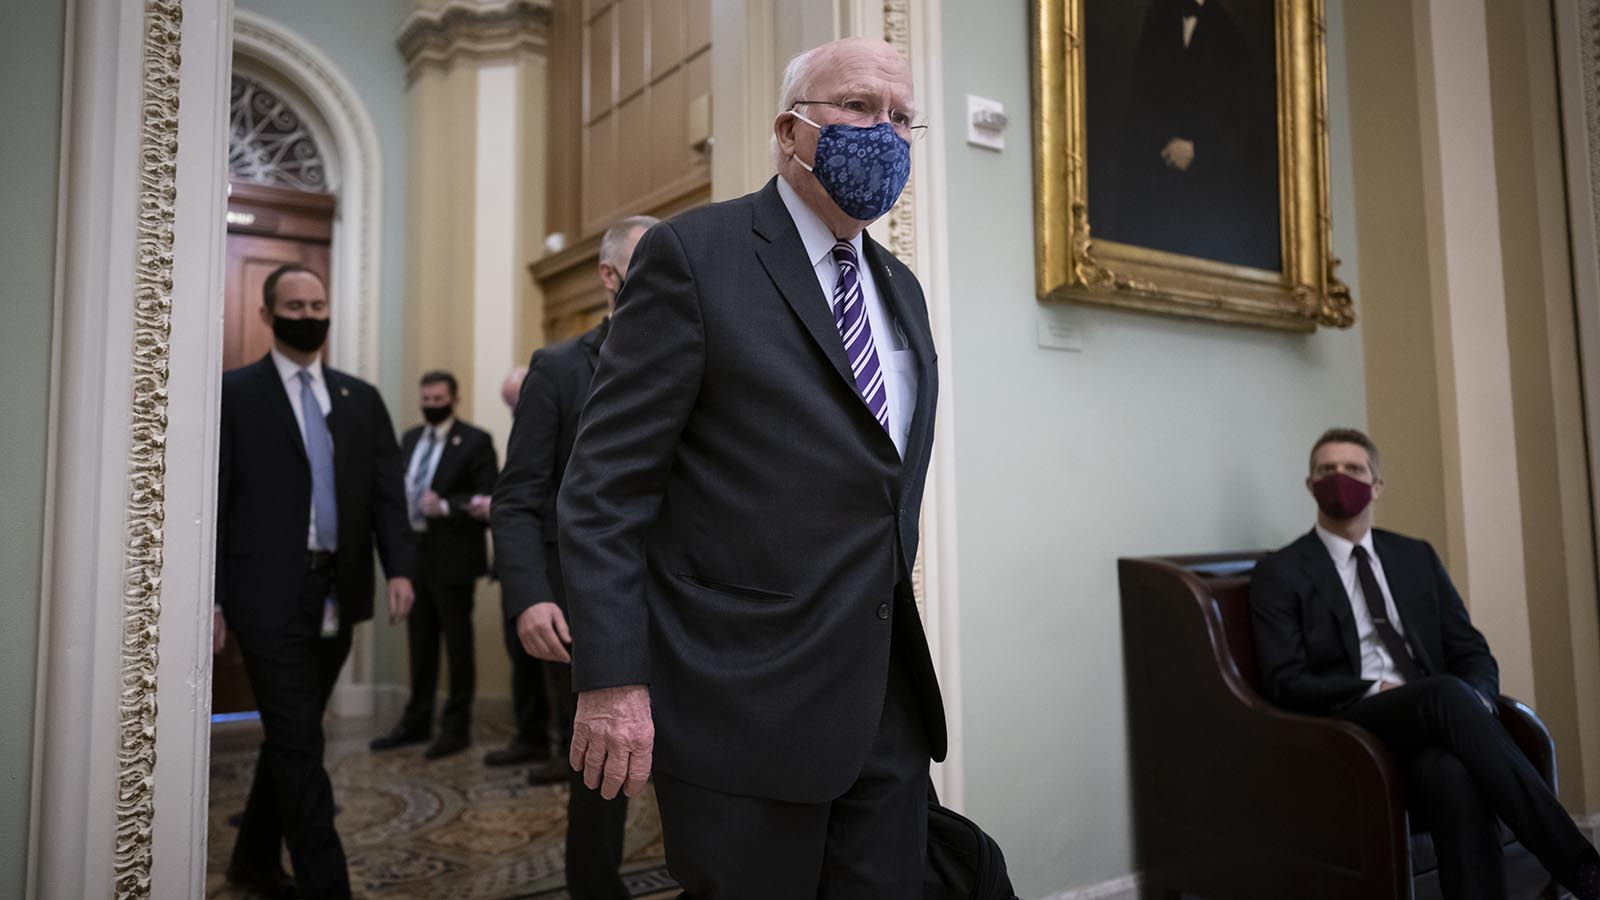 Sen. Patrick Leahy arrives for a roll call vote to confirm Antony Blinken, President Joe Biden's nominee to be secretary of State, at the Capitol in Washington on Tuesday.